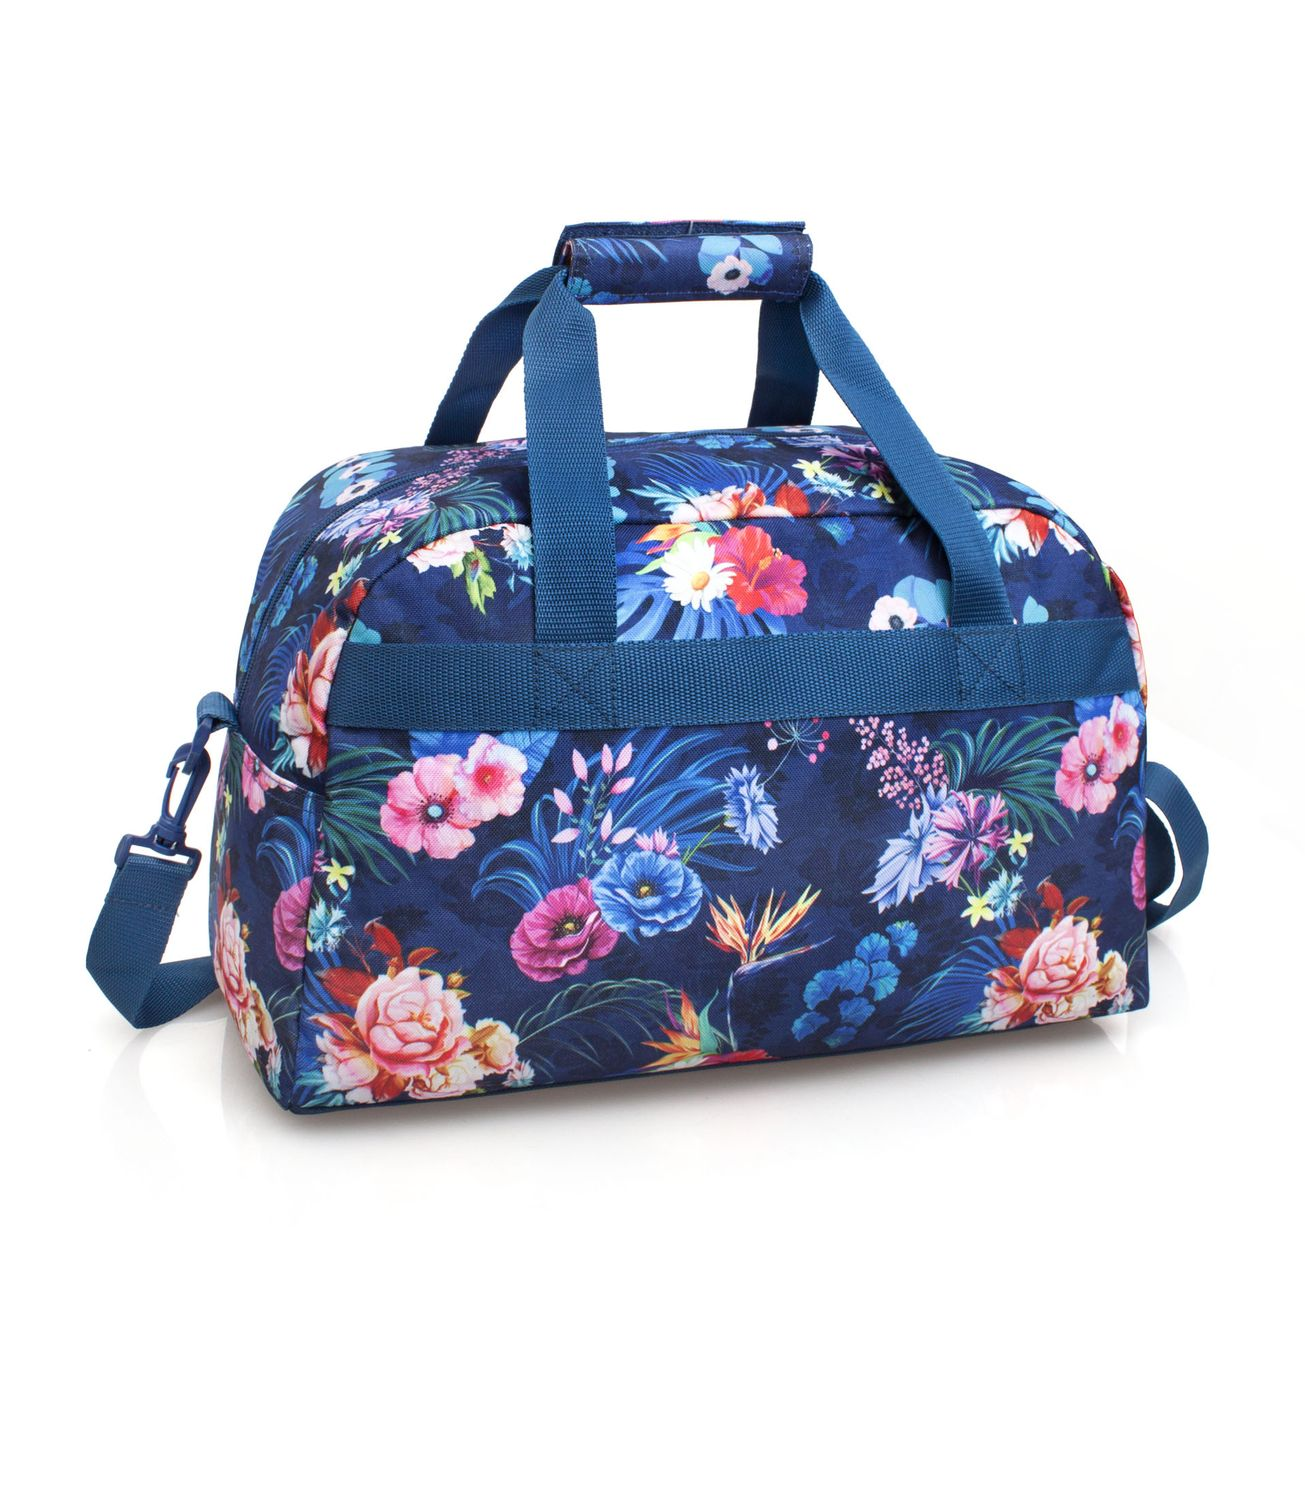 EL CHARRO Travel Bag Blue FLOWERS – image 2